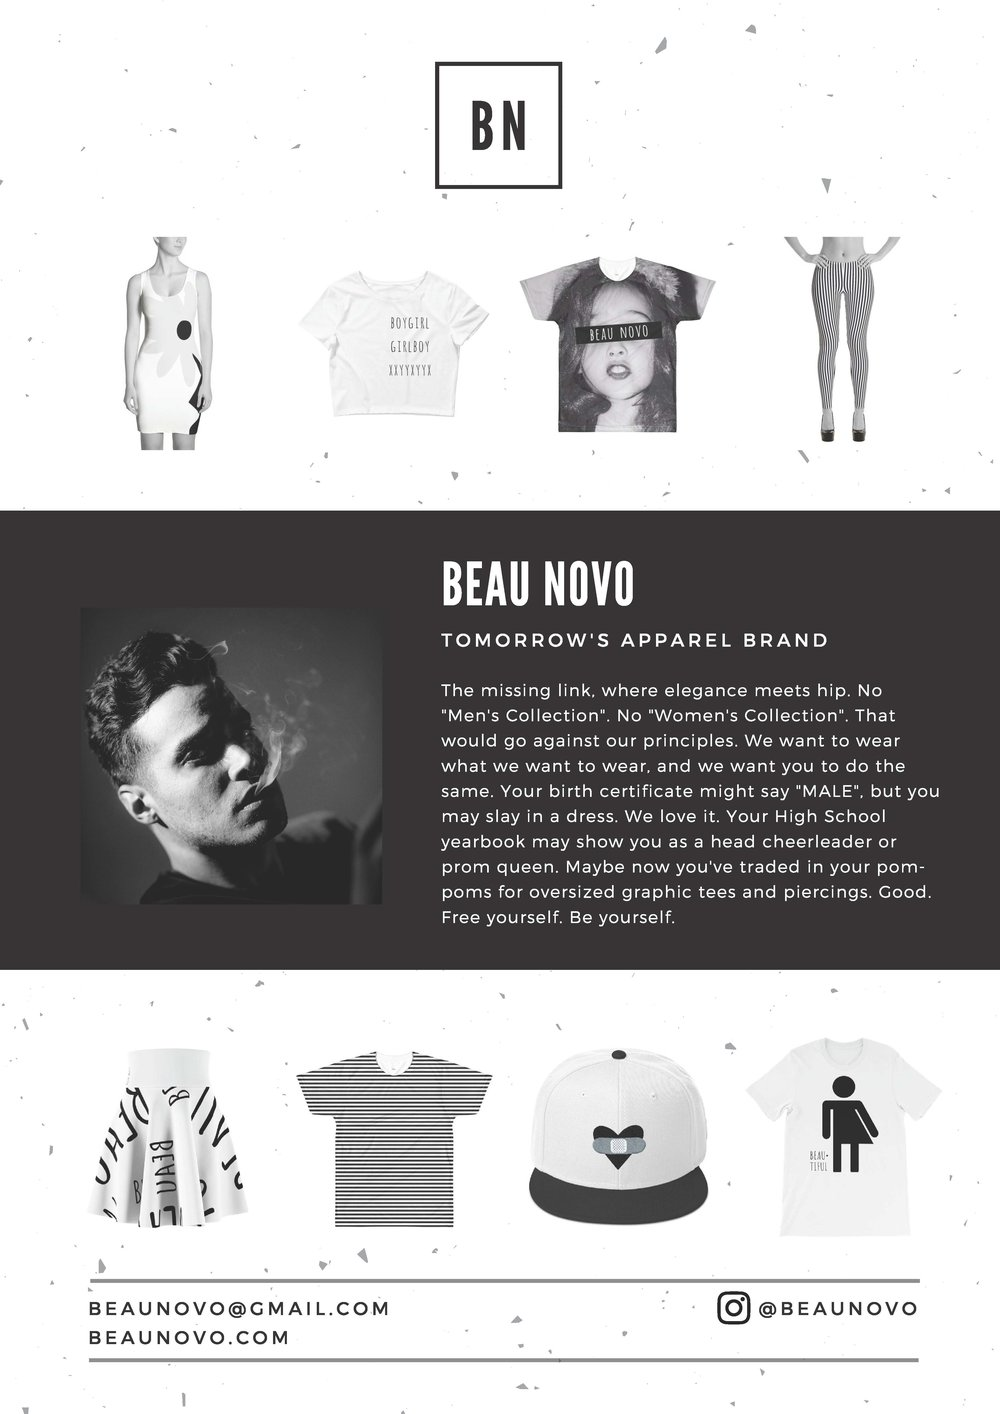 Beau Novo Press Kit crafted by Bobby from Mad Marketing